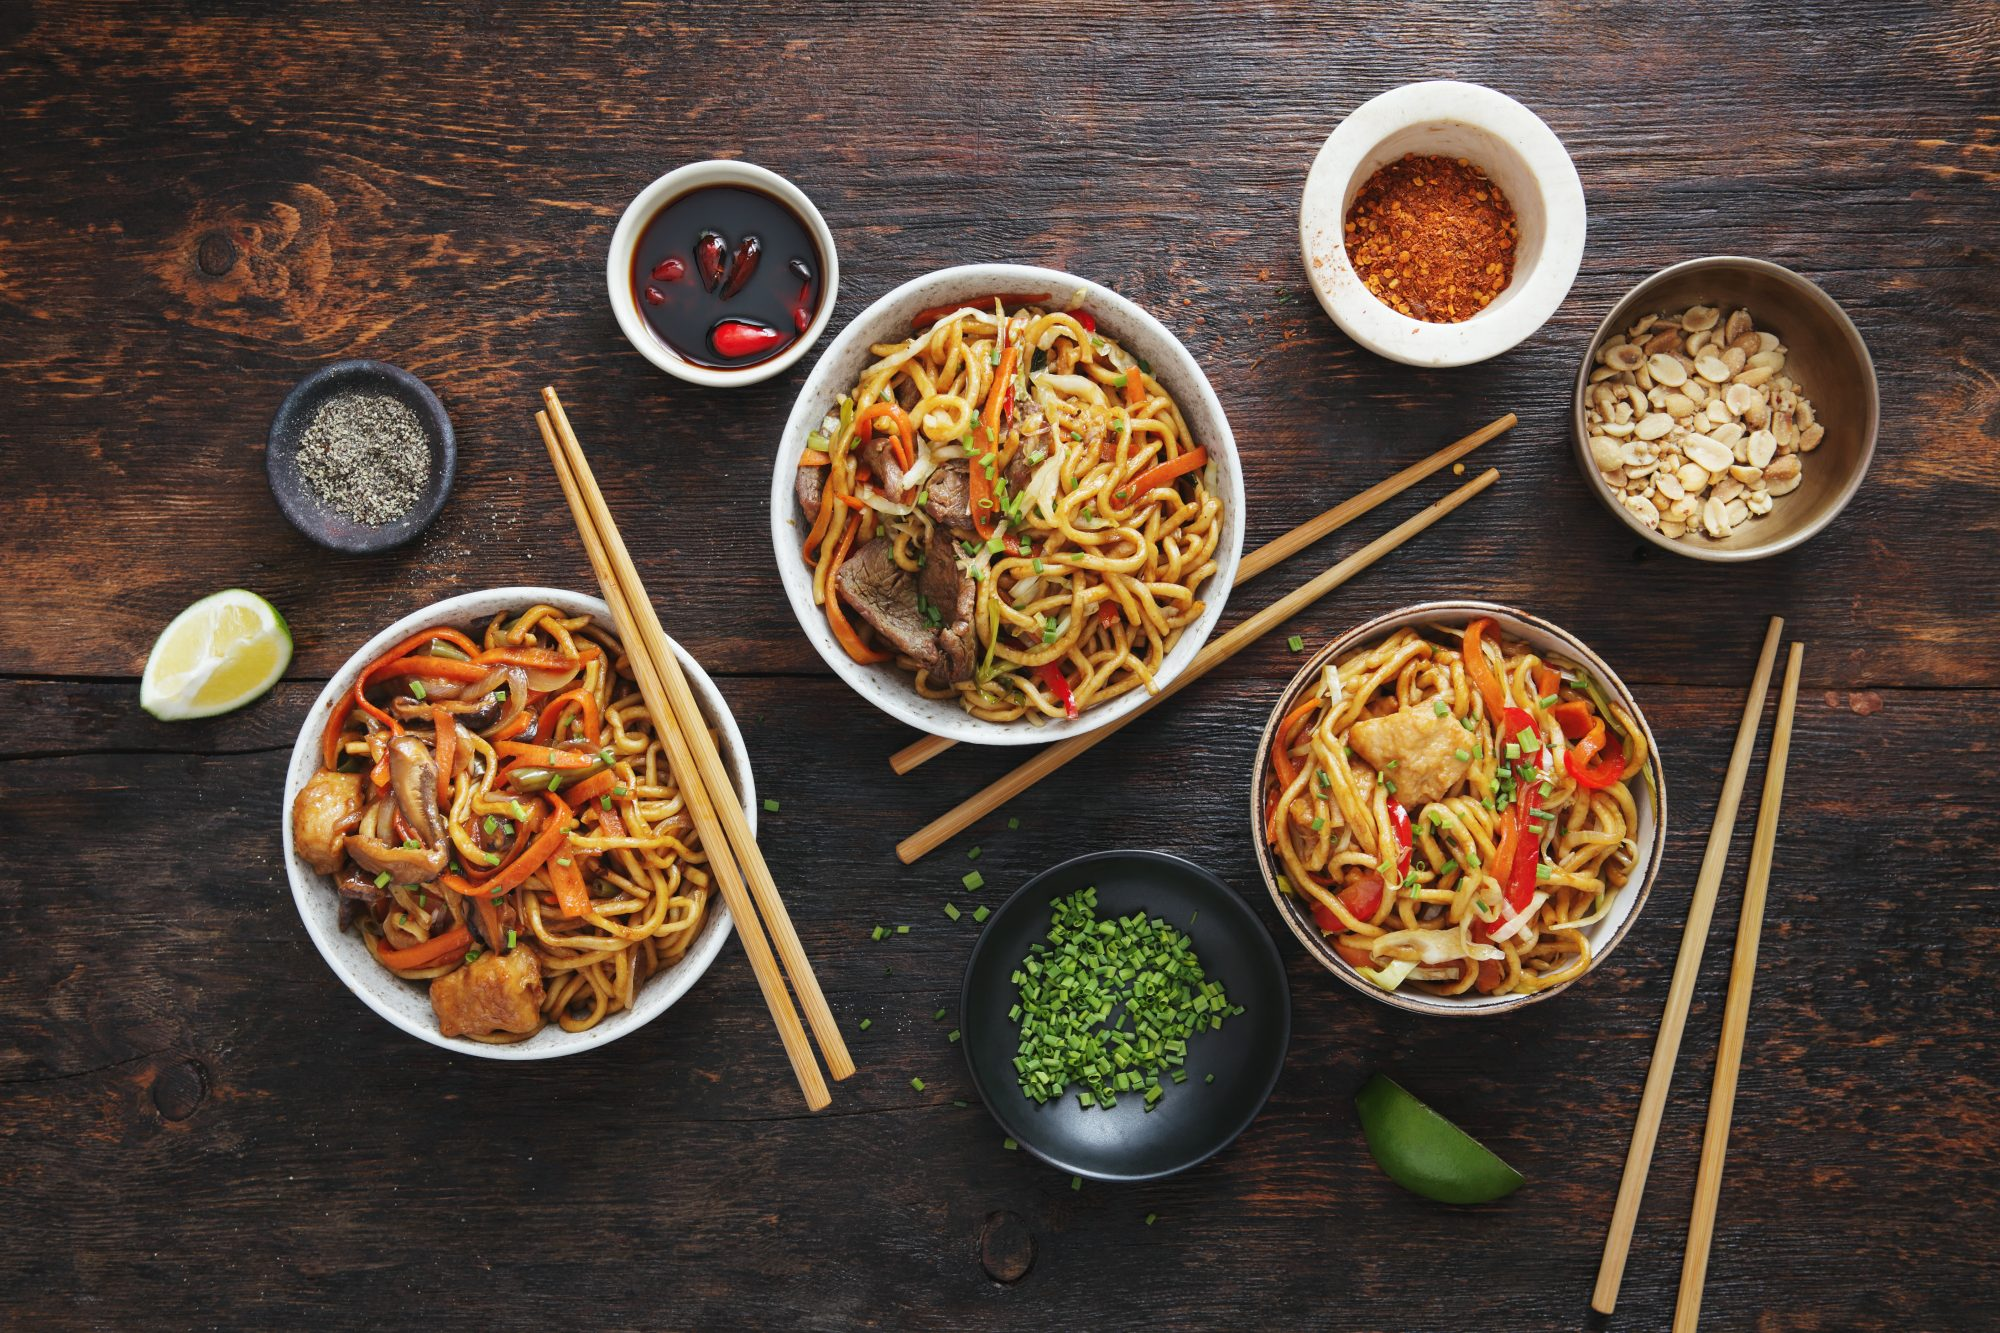 Chicken, Beef and Vegetables Chow Mein